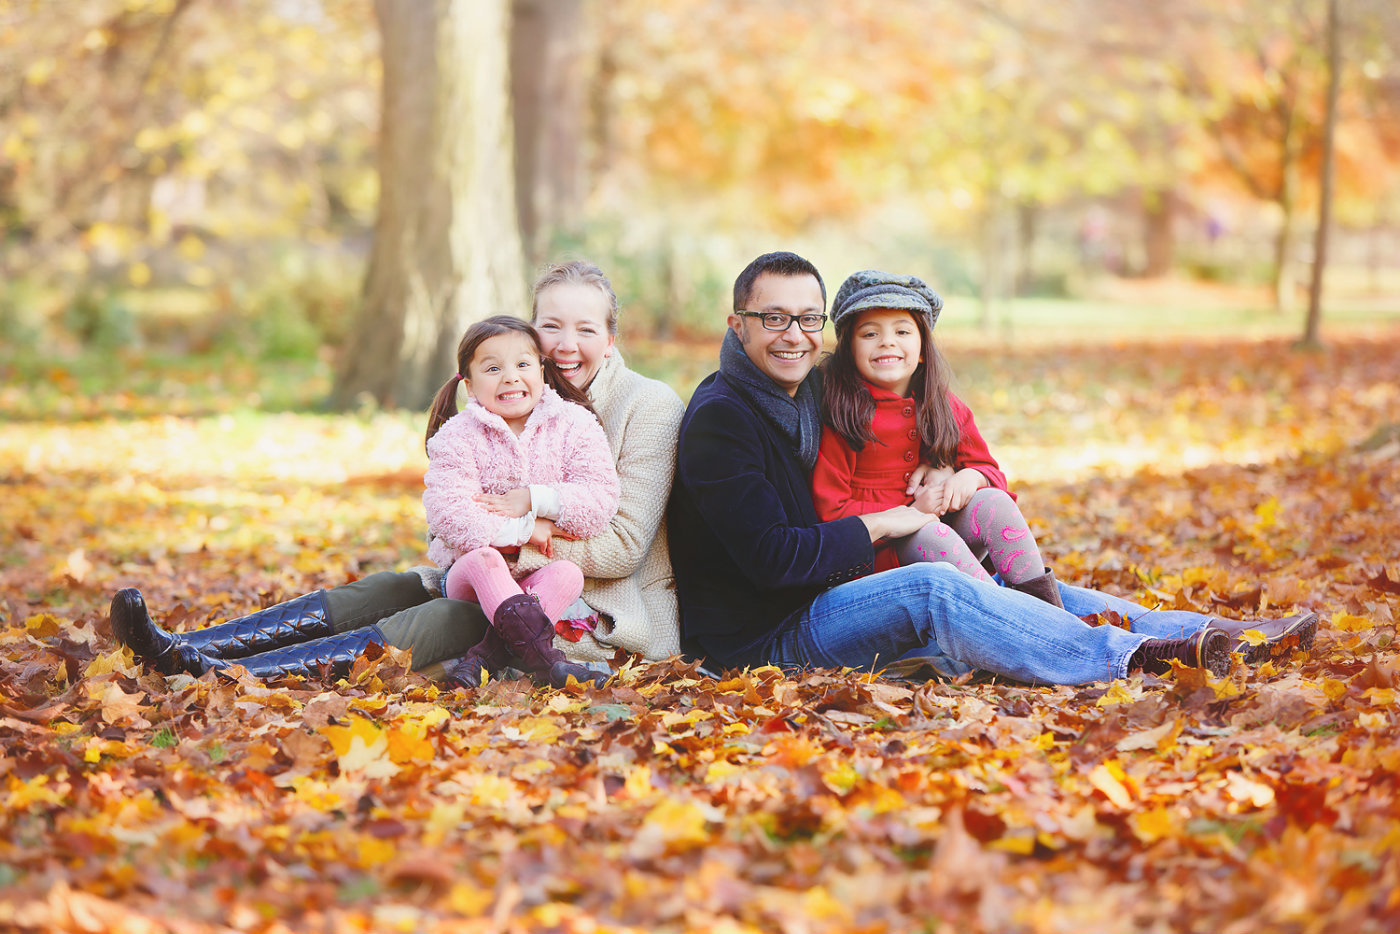 family portrait sitting in autumn leaves